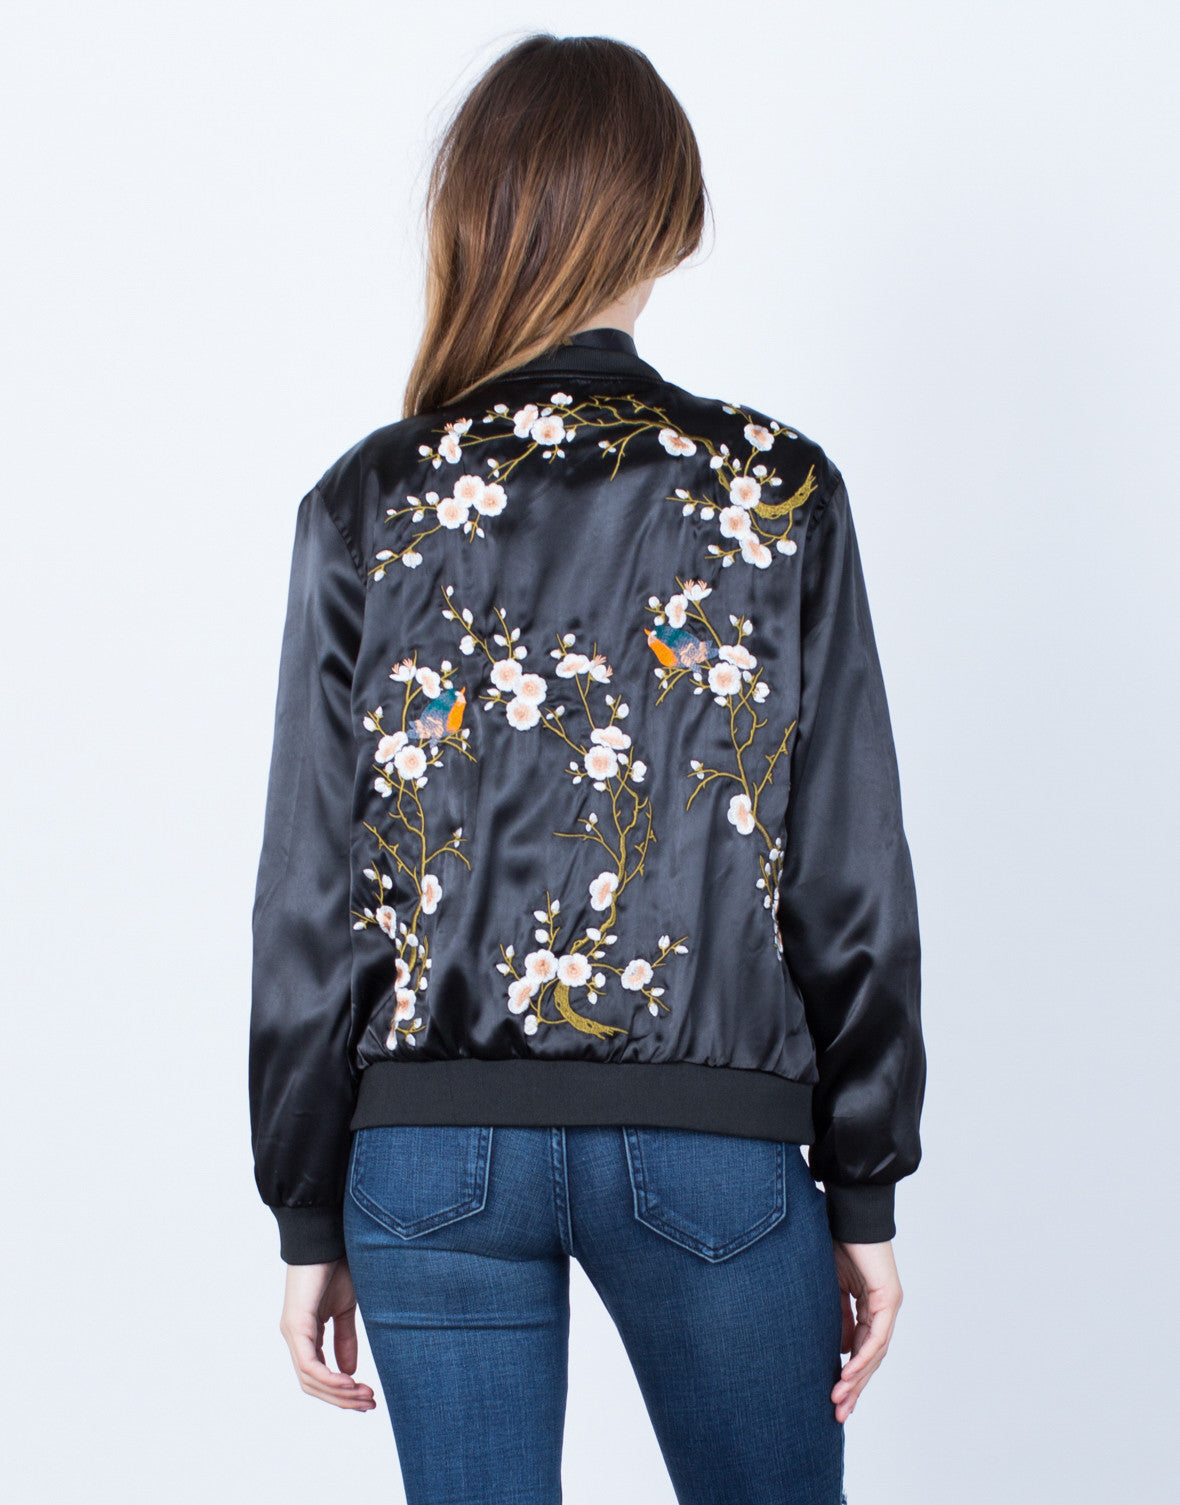 Back View of Floral Embroidered Satin Bomber Jacket